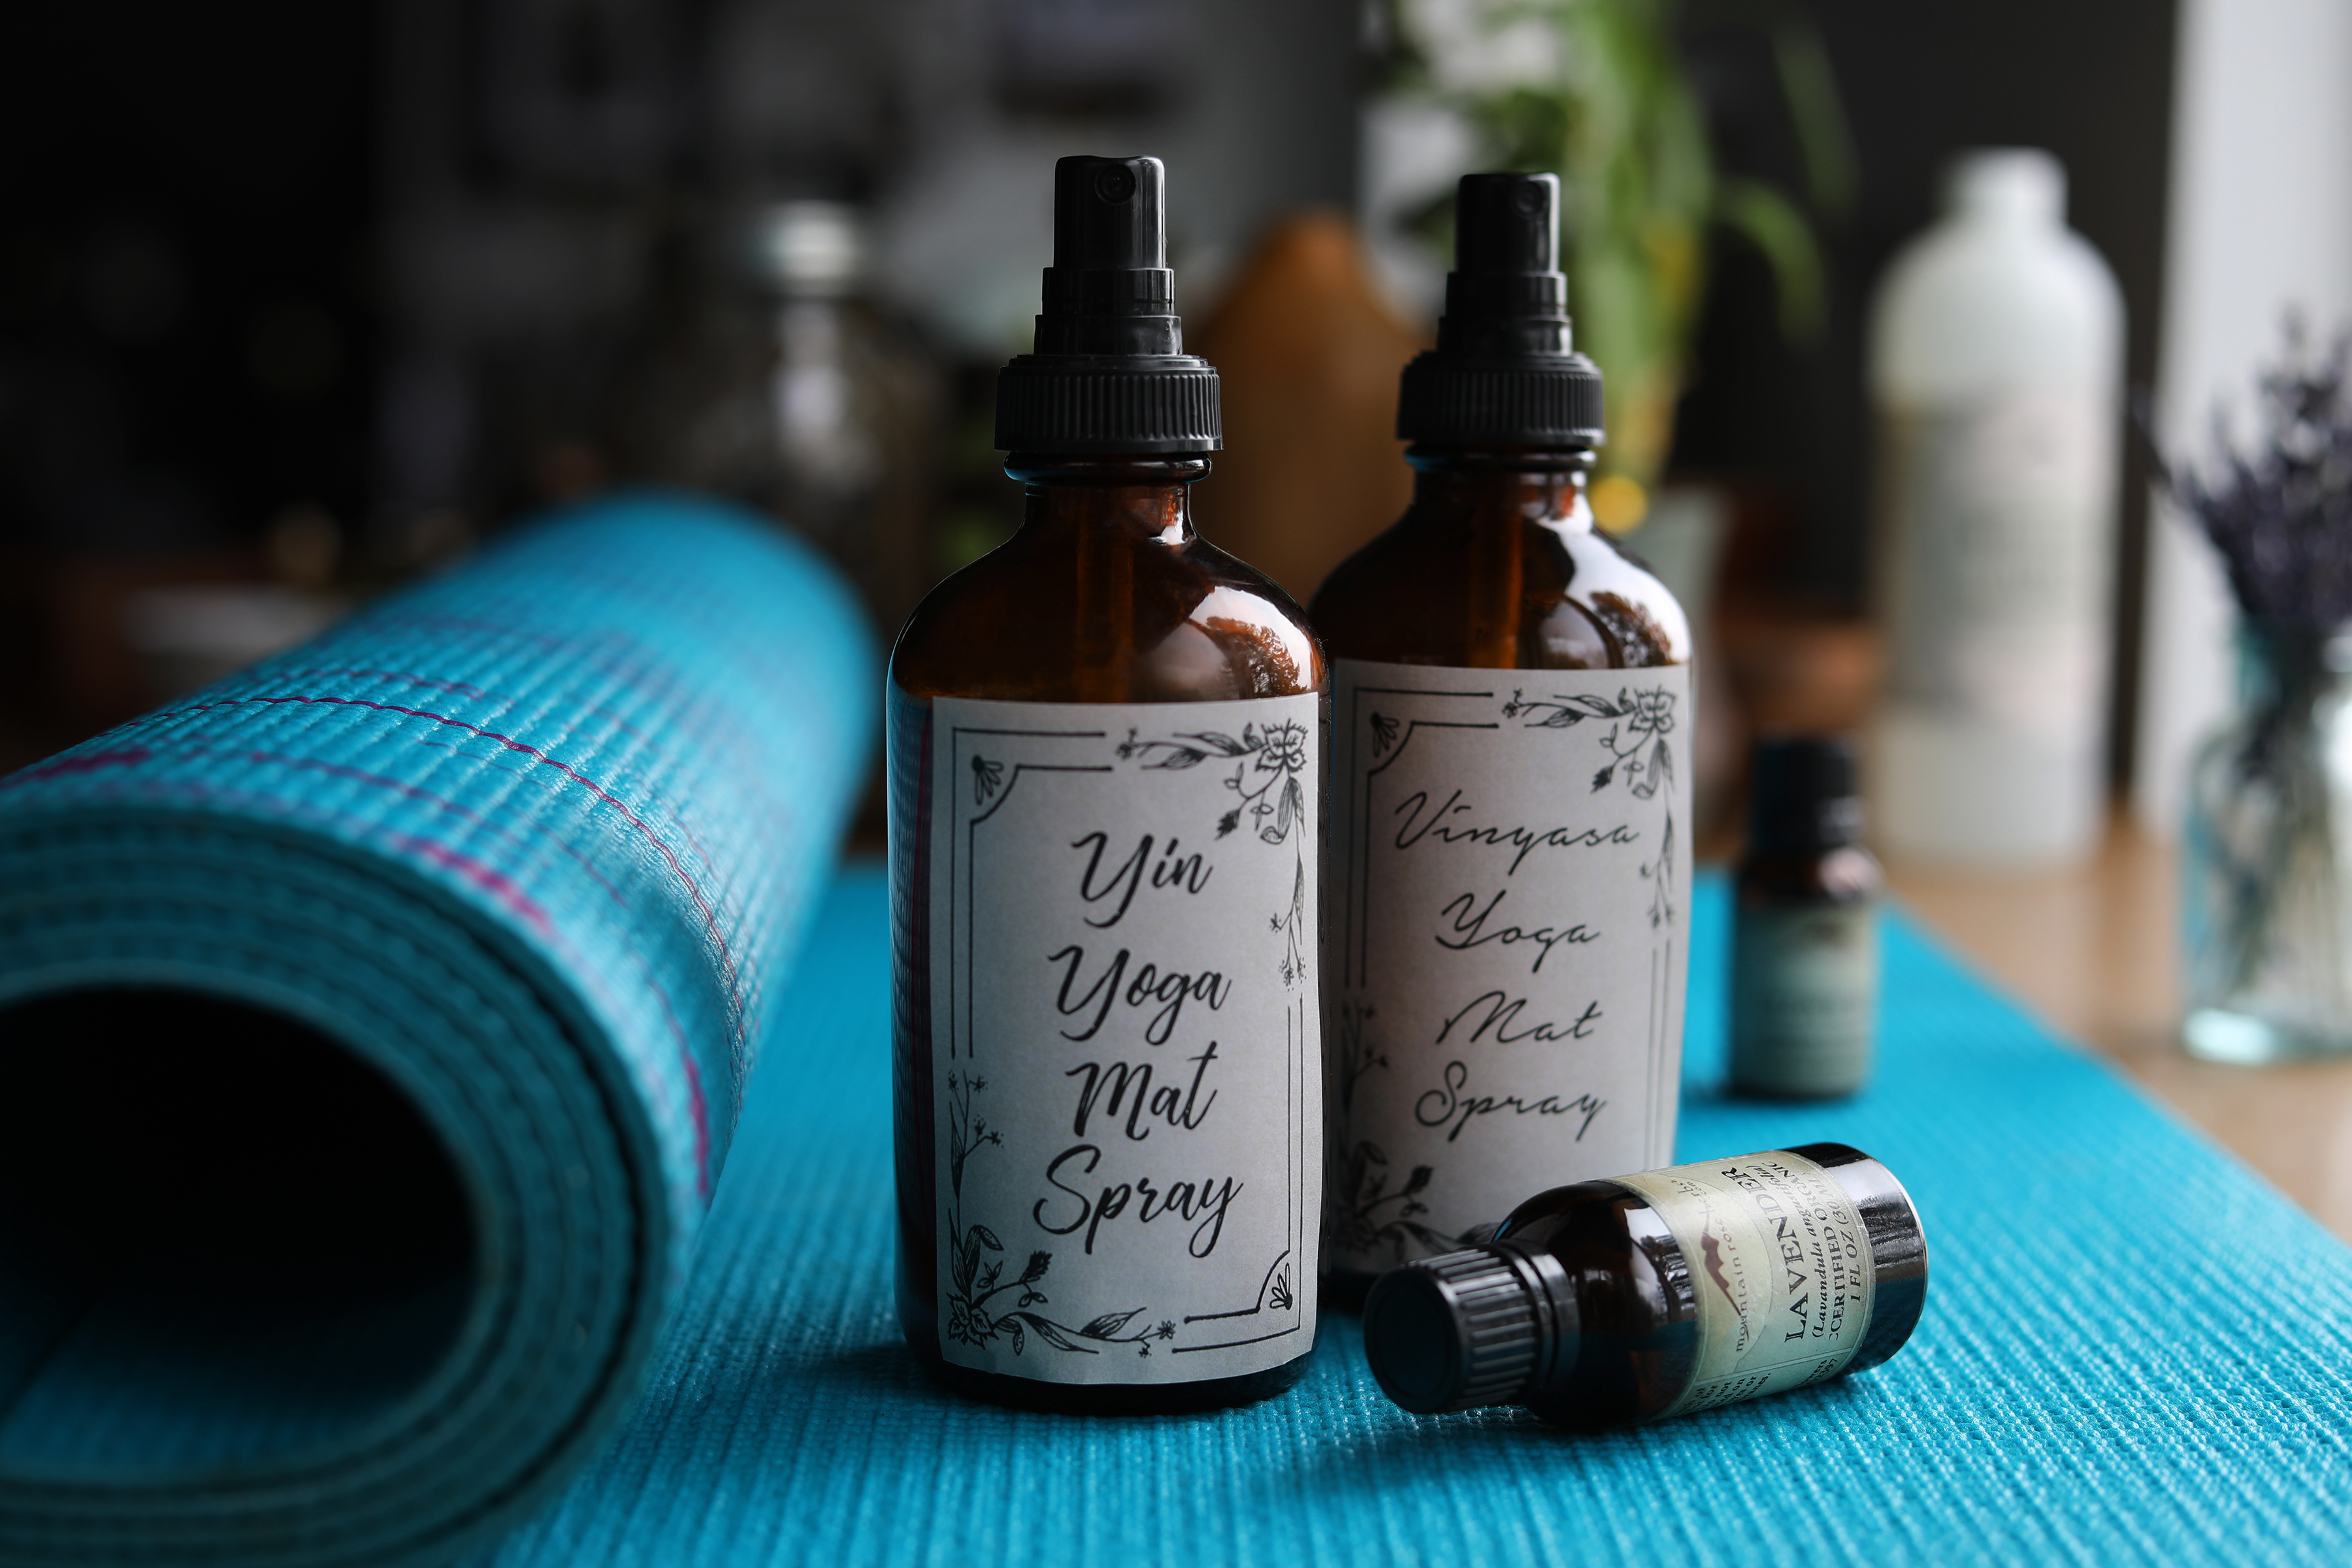 Partially Rolled up yoga with two bottles of homemade spray and bottles of essential oils around.